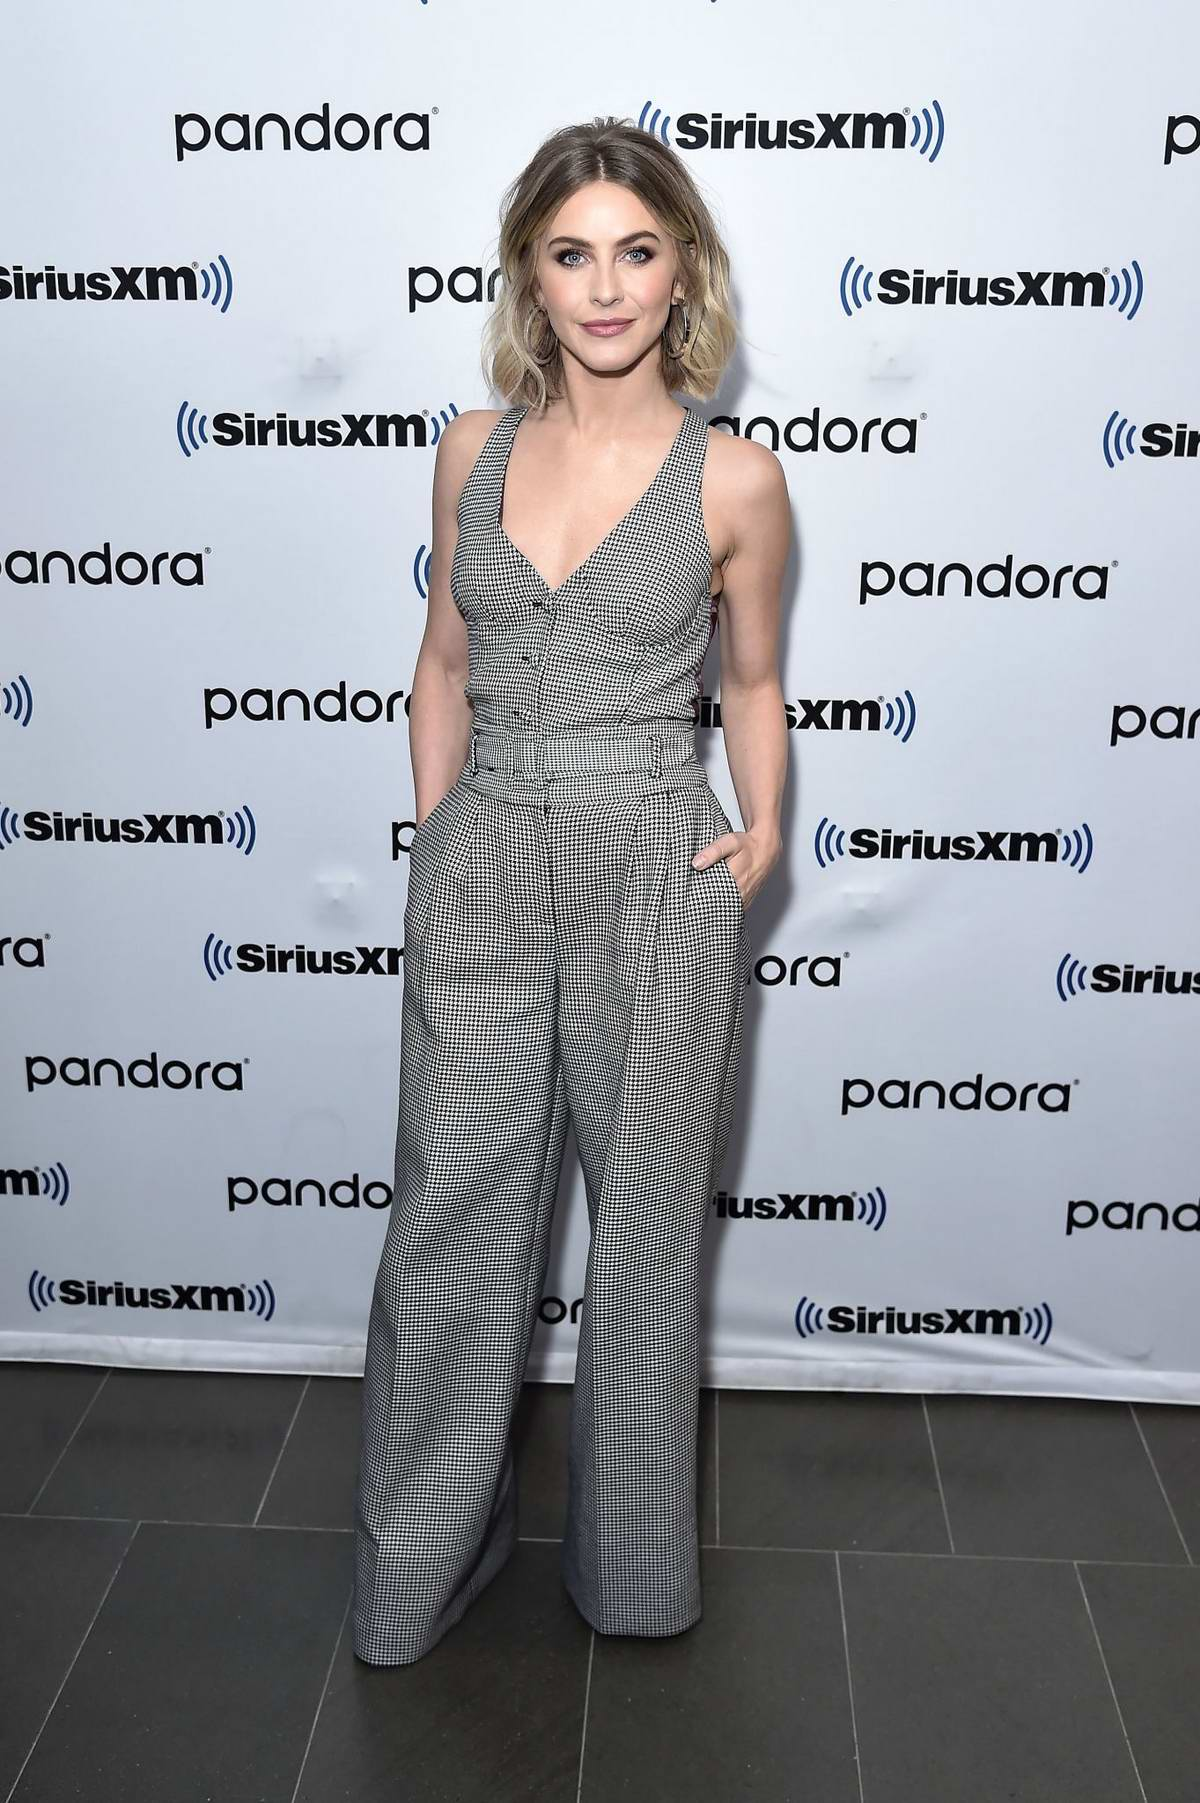 Julianne Hough visits SiriusXM Studios in New York City